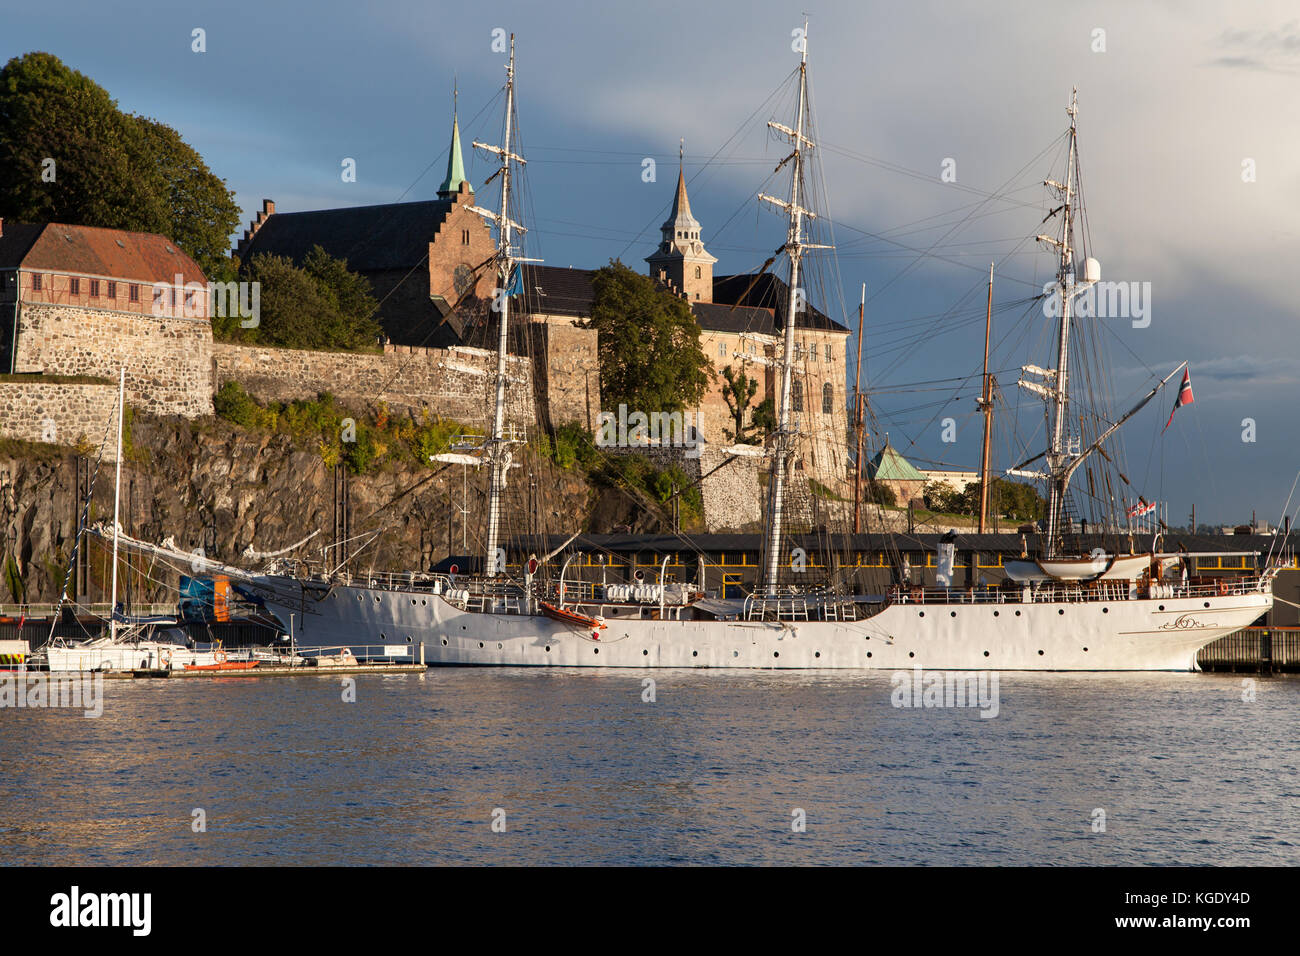 Akershus Fortress in Oslo, Norway. - Stock Image